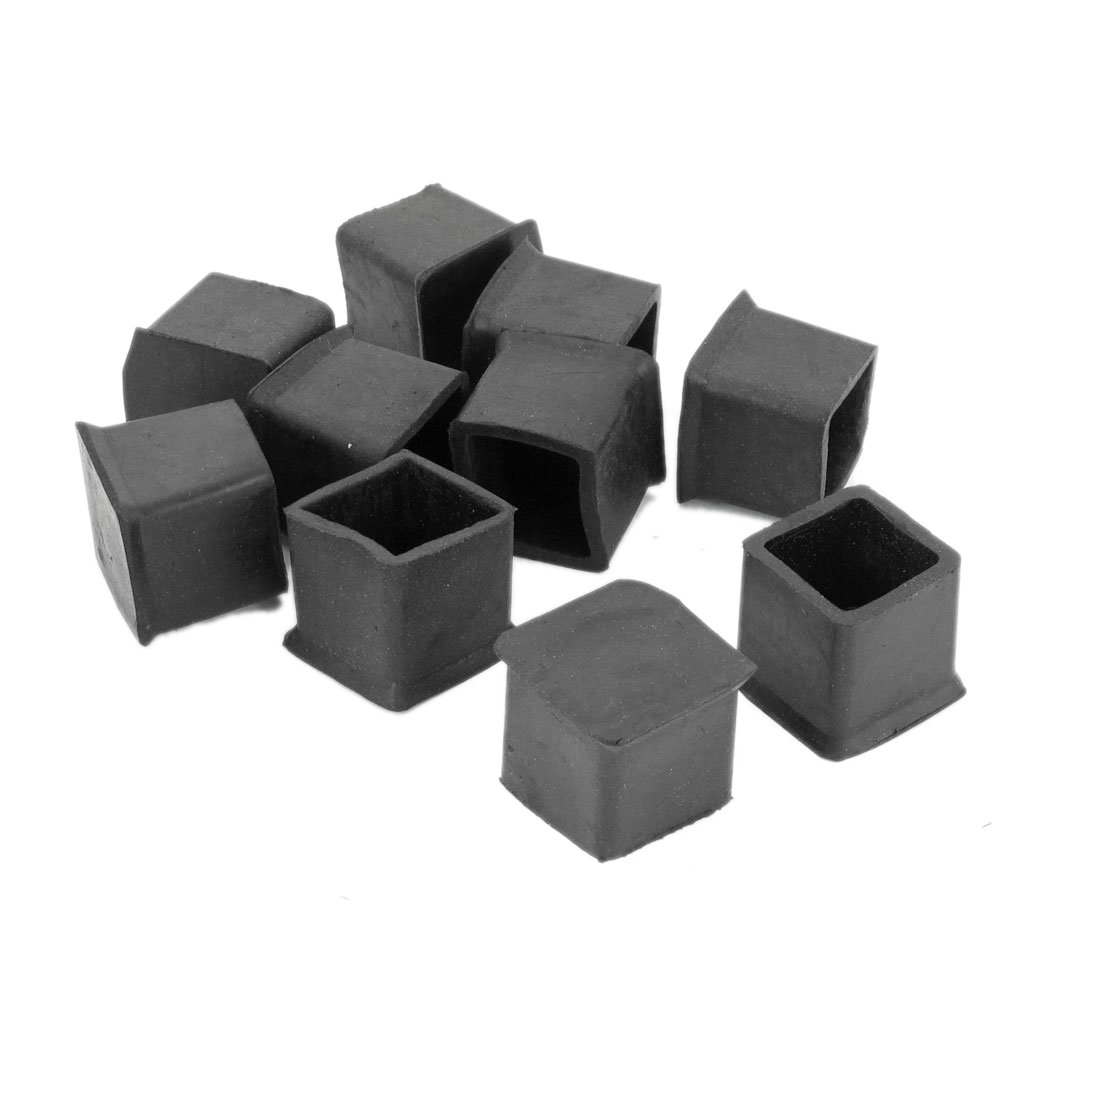 10xChair Table Leg Foot Rubber Covers Floor Protector Cap Square